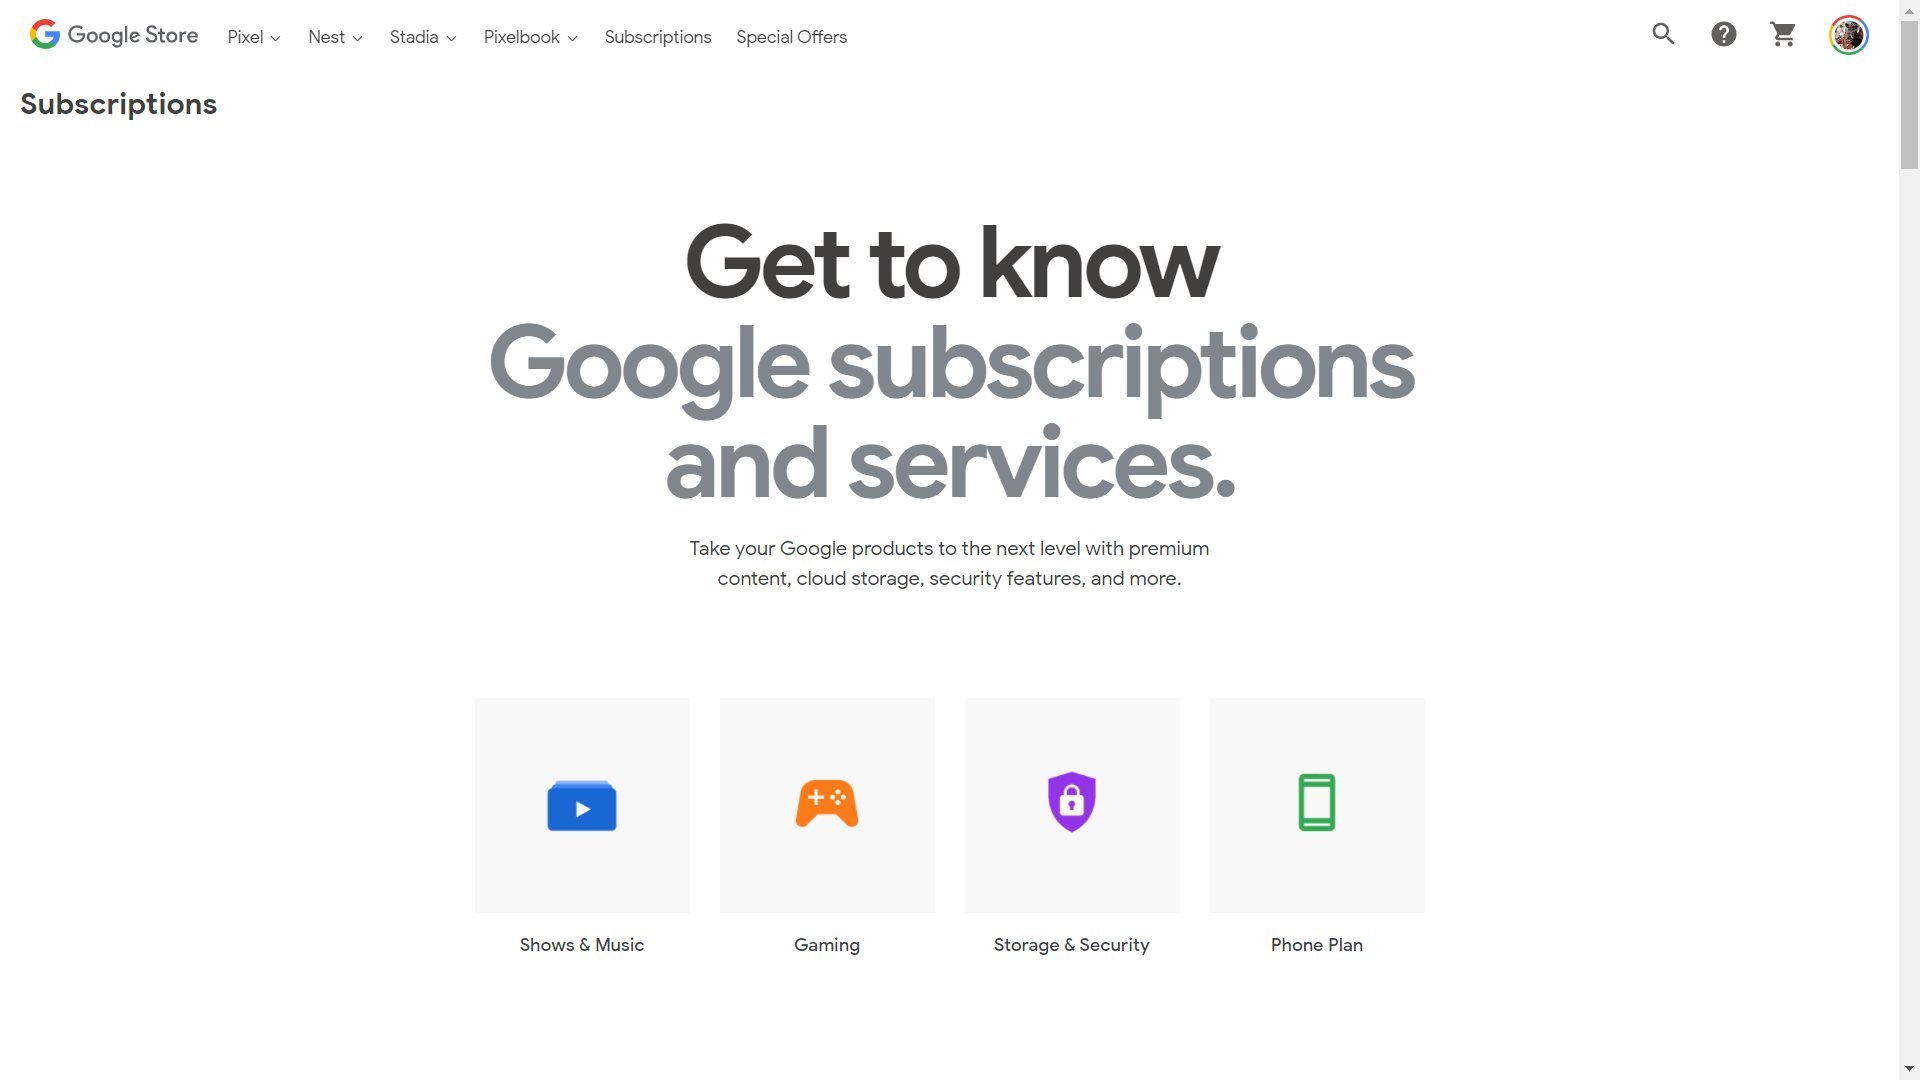 google store subscriptions title